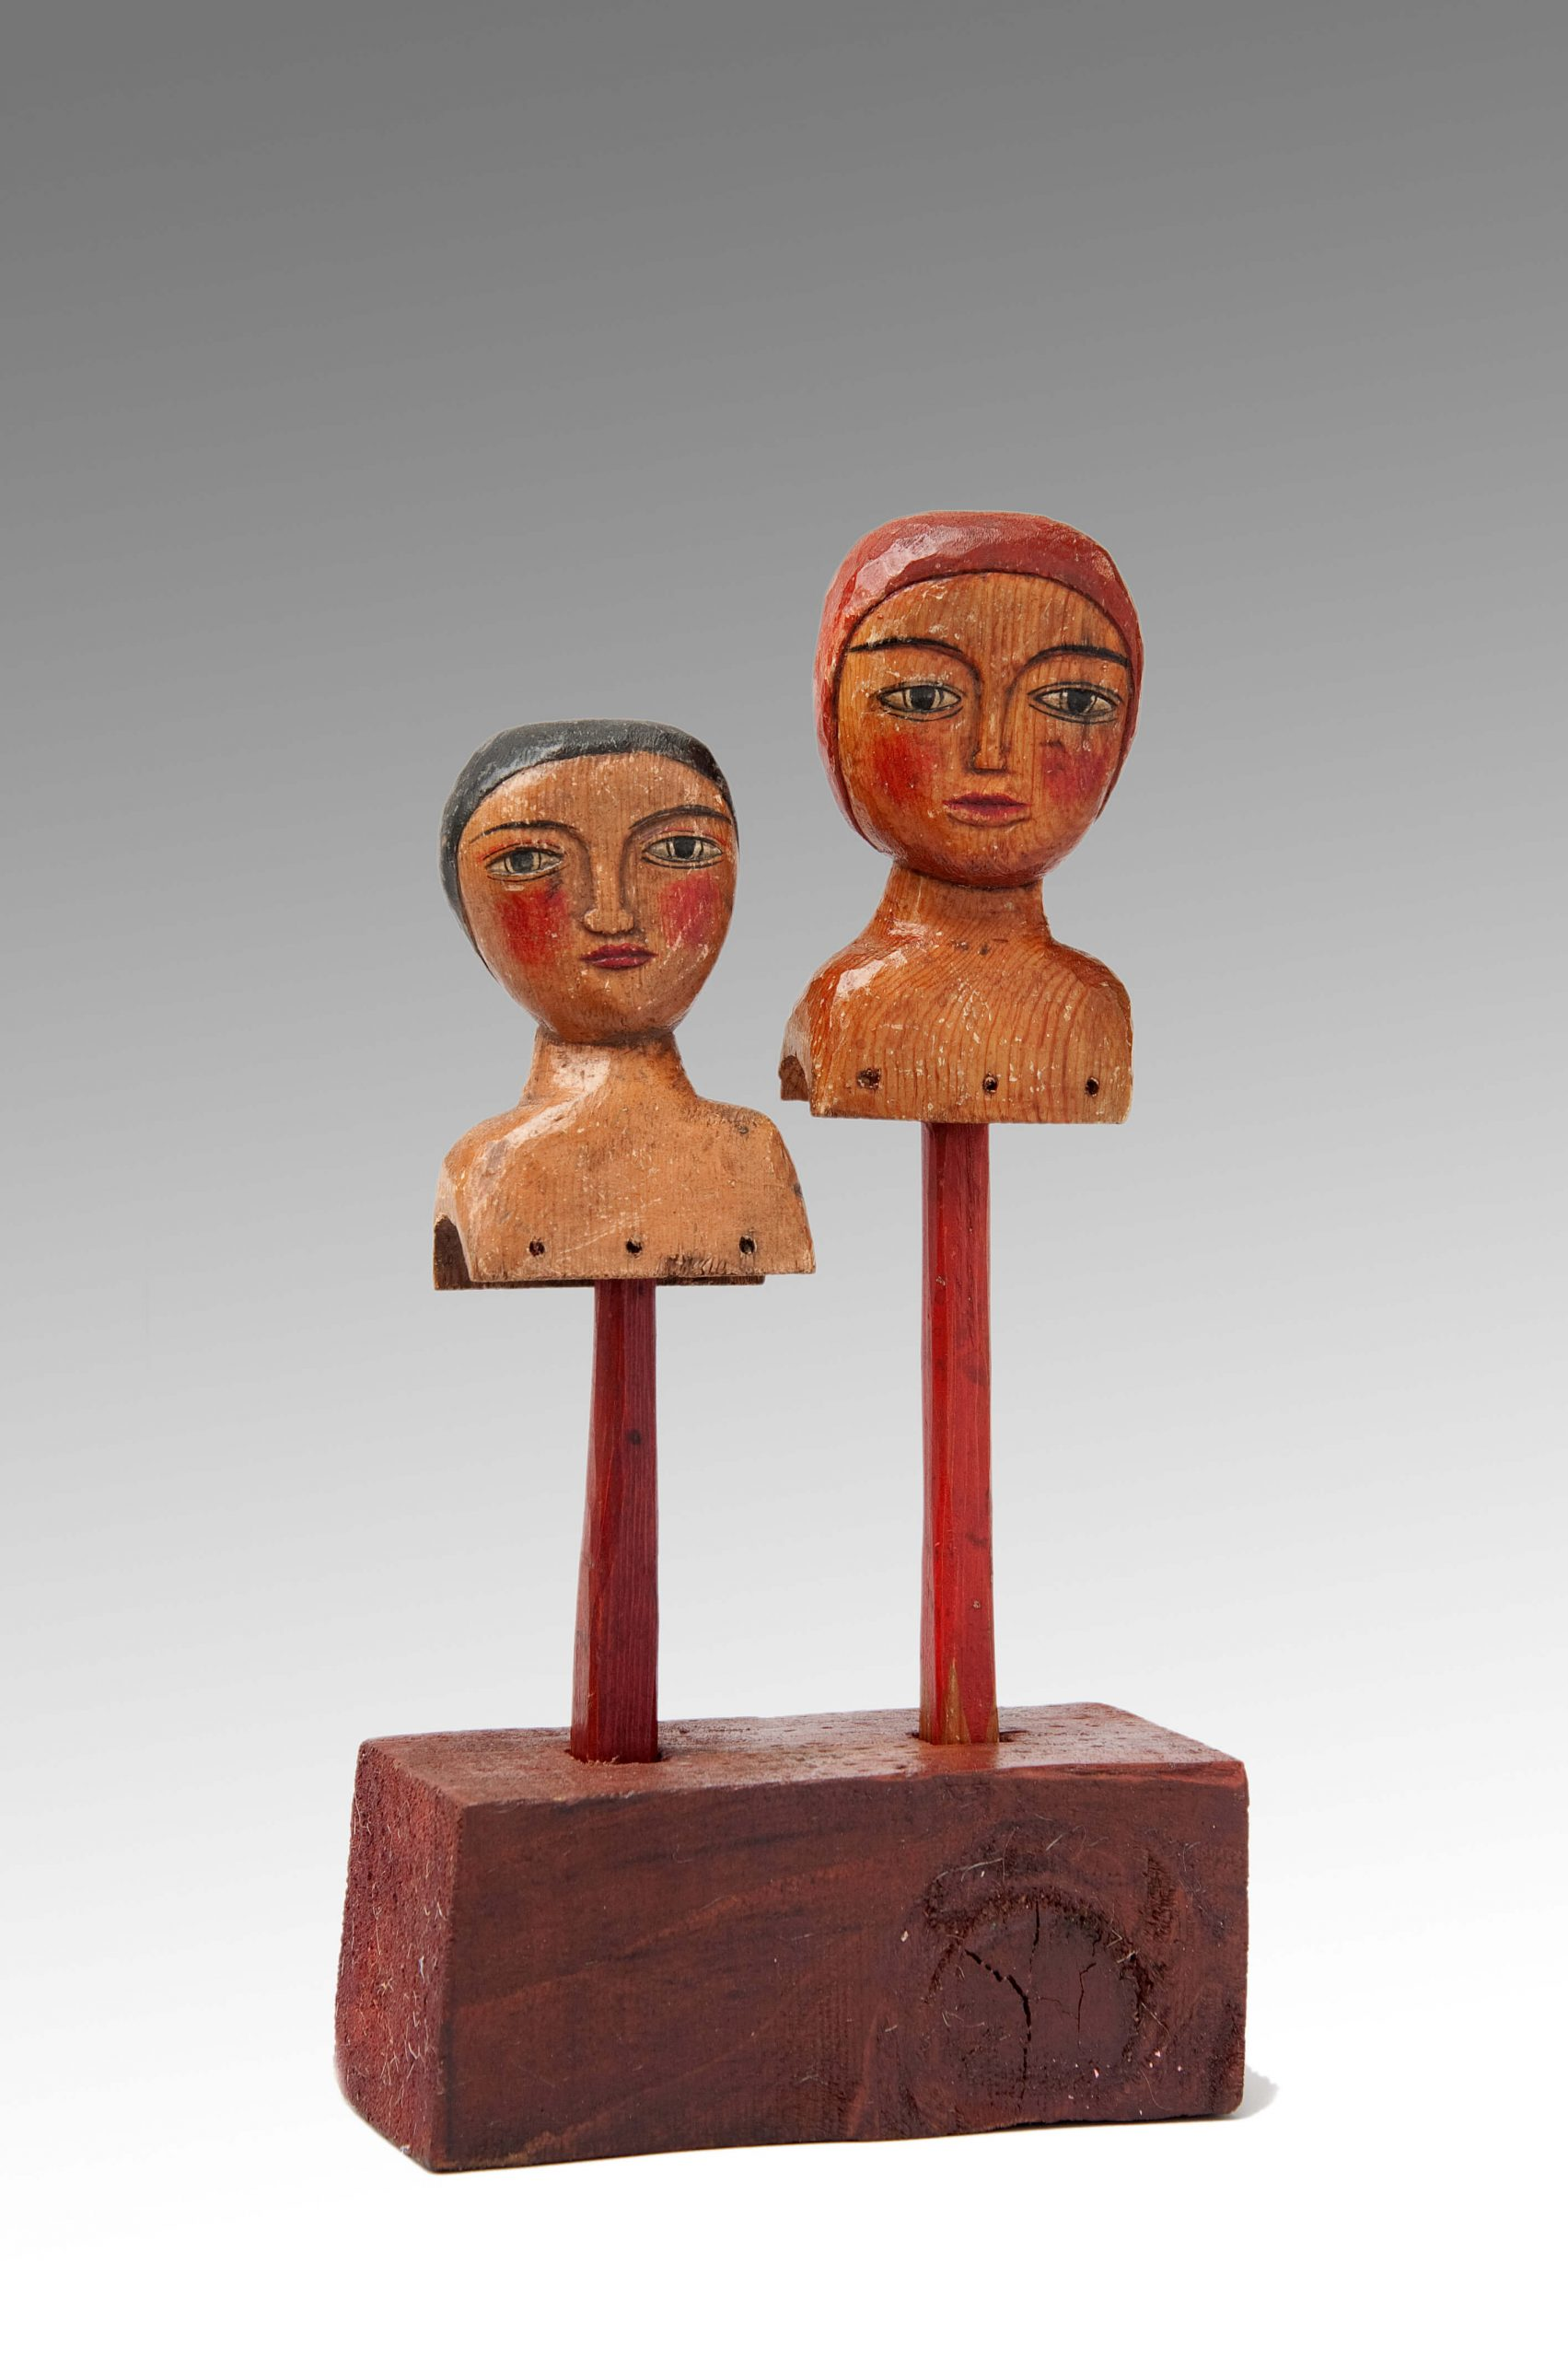 Image of A Rare Pair of Carved and Polychromed English Hand Puppets